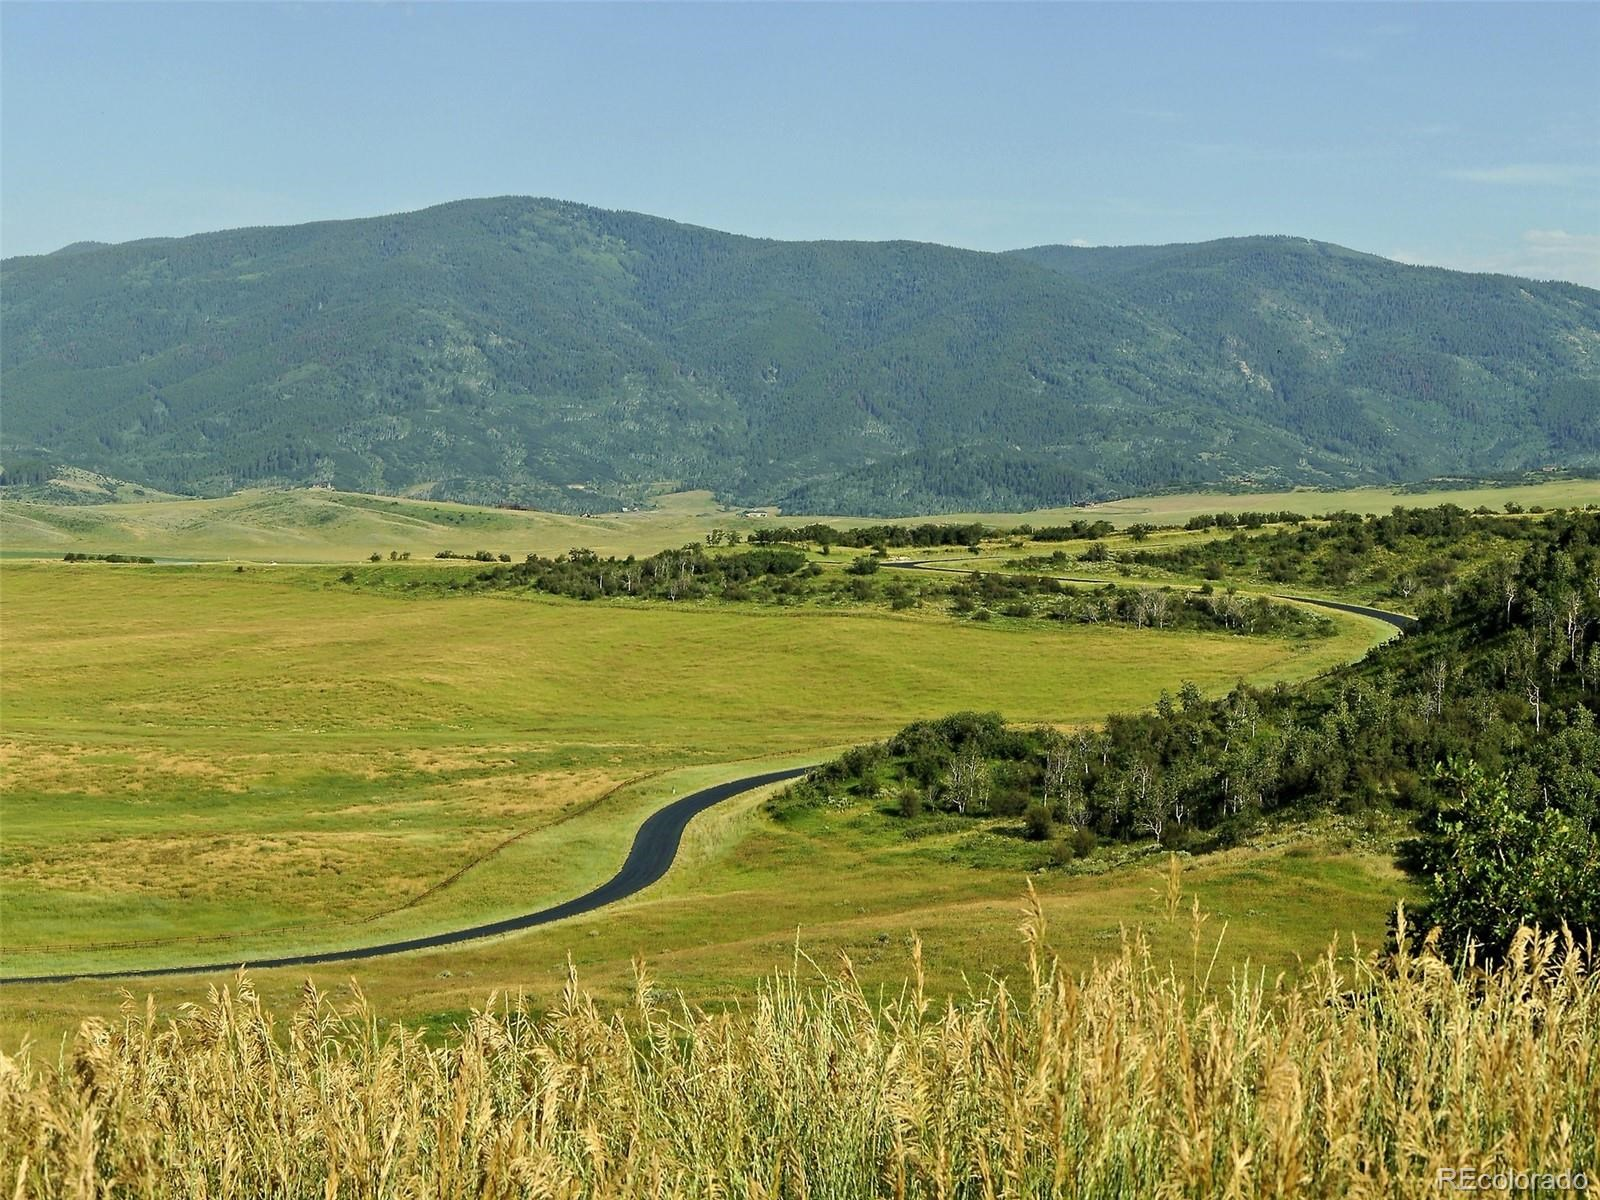 MLS# 5179399 - 1 - 30445 Marshall Ridge, Steamboat Springs, CO 80487